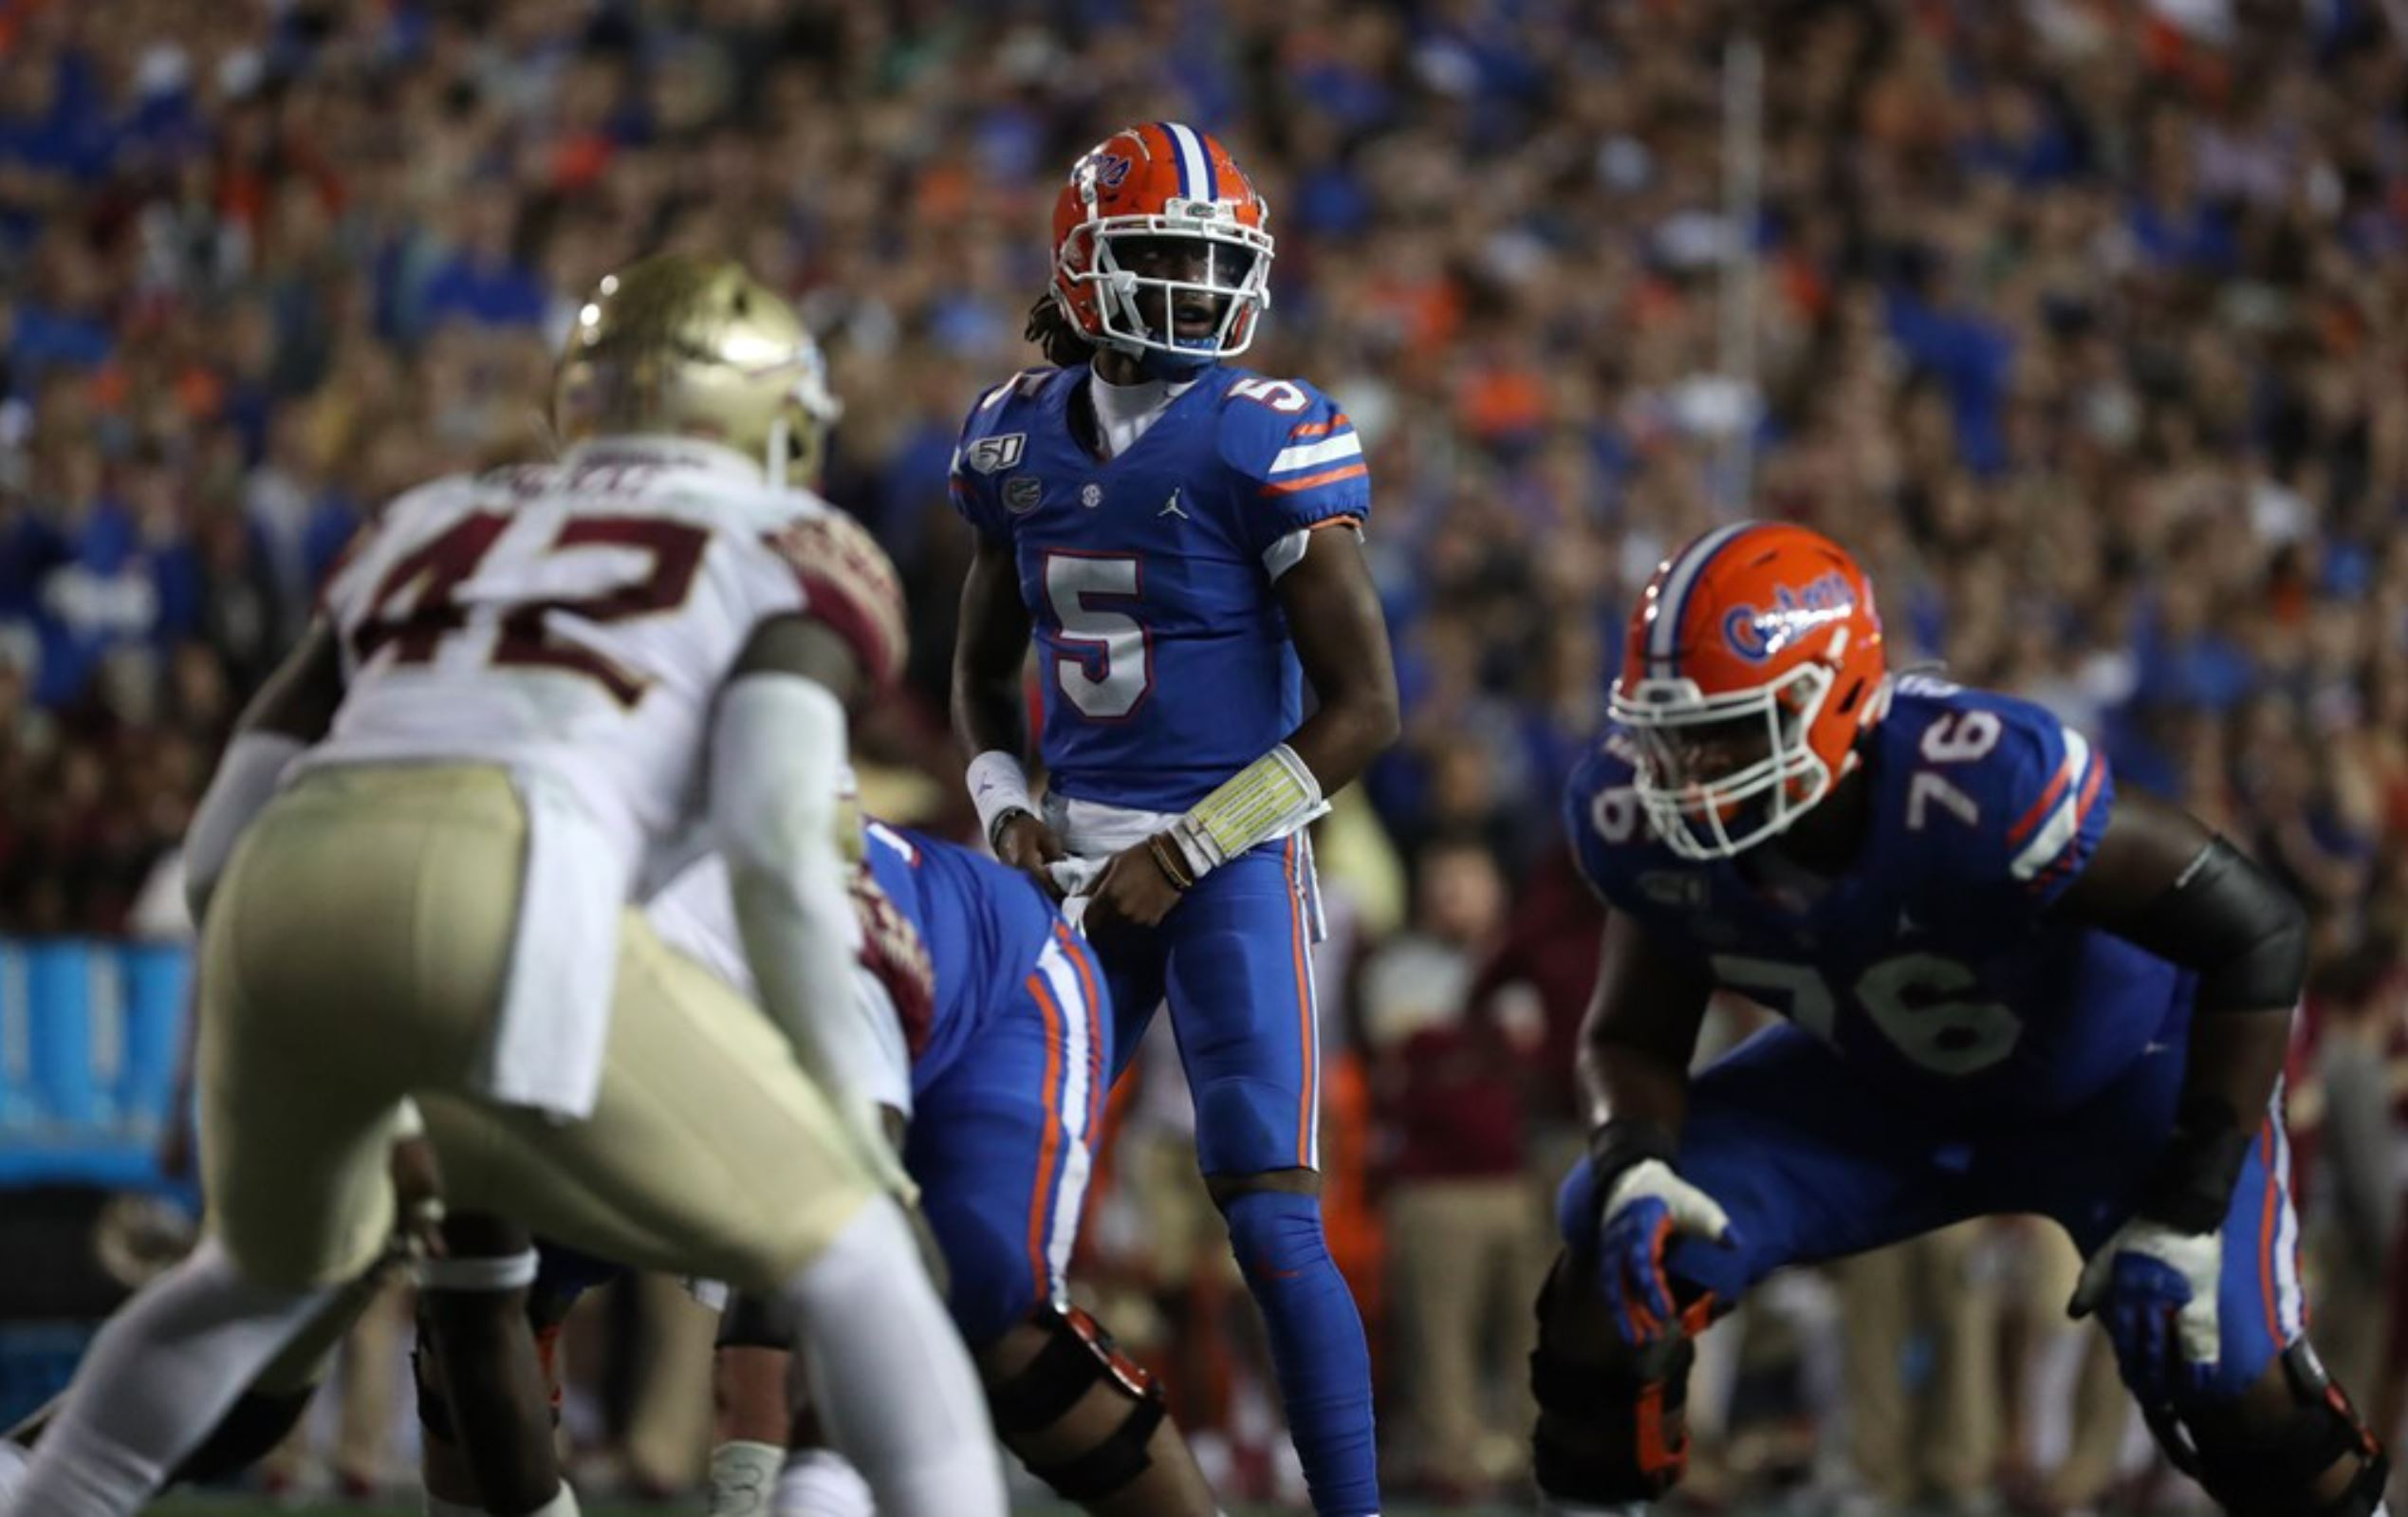 FSU Football 2021 Opponent Preview: University of Florida